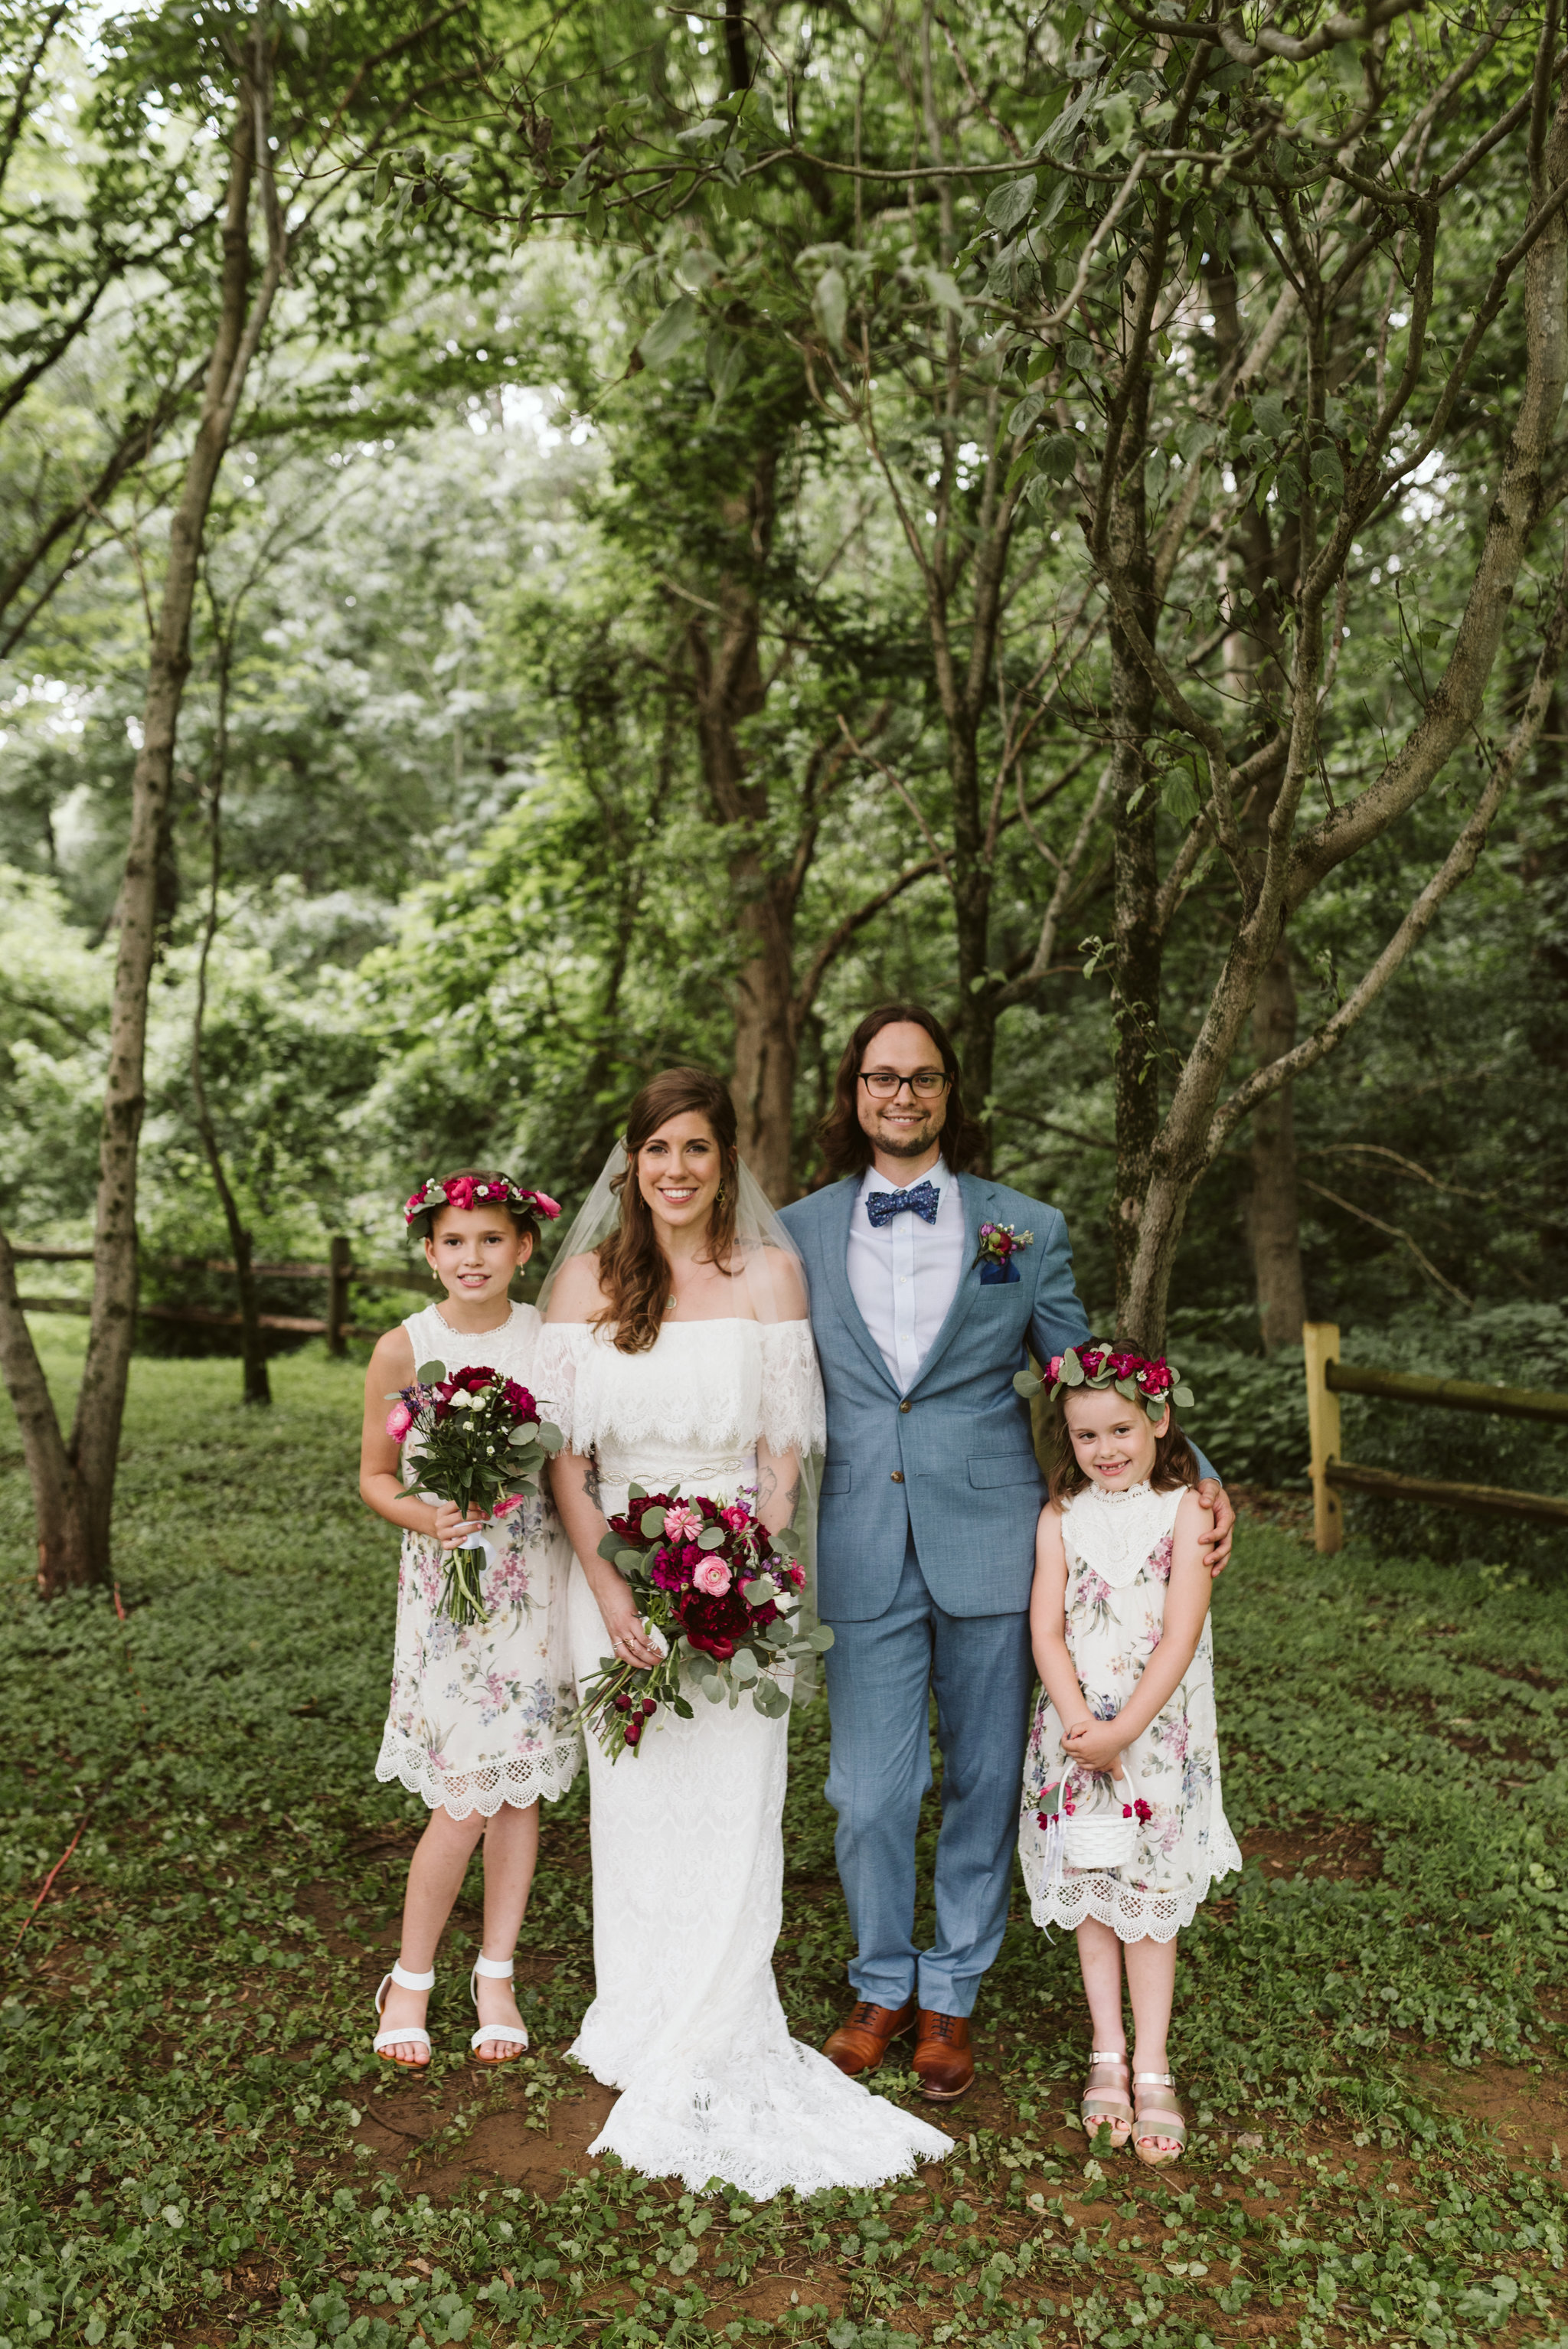 Annapolis, Quaker Wedding, Maryland Wedding Photographer, Intimate, Small Wedding, Vintage, DIY, Bride and Groom with Flower Girls, Portrait Photo